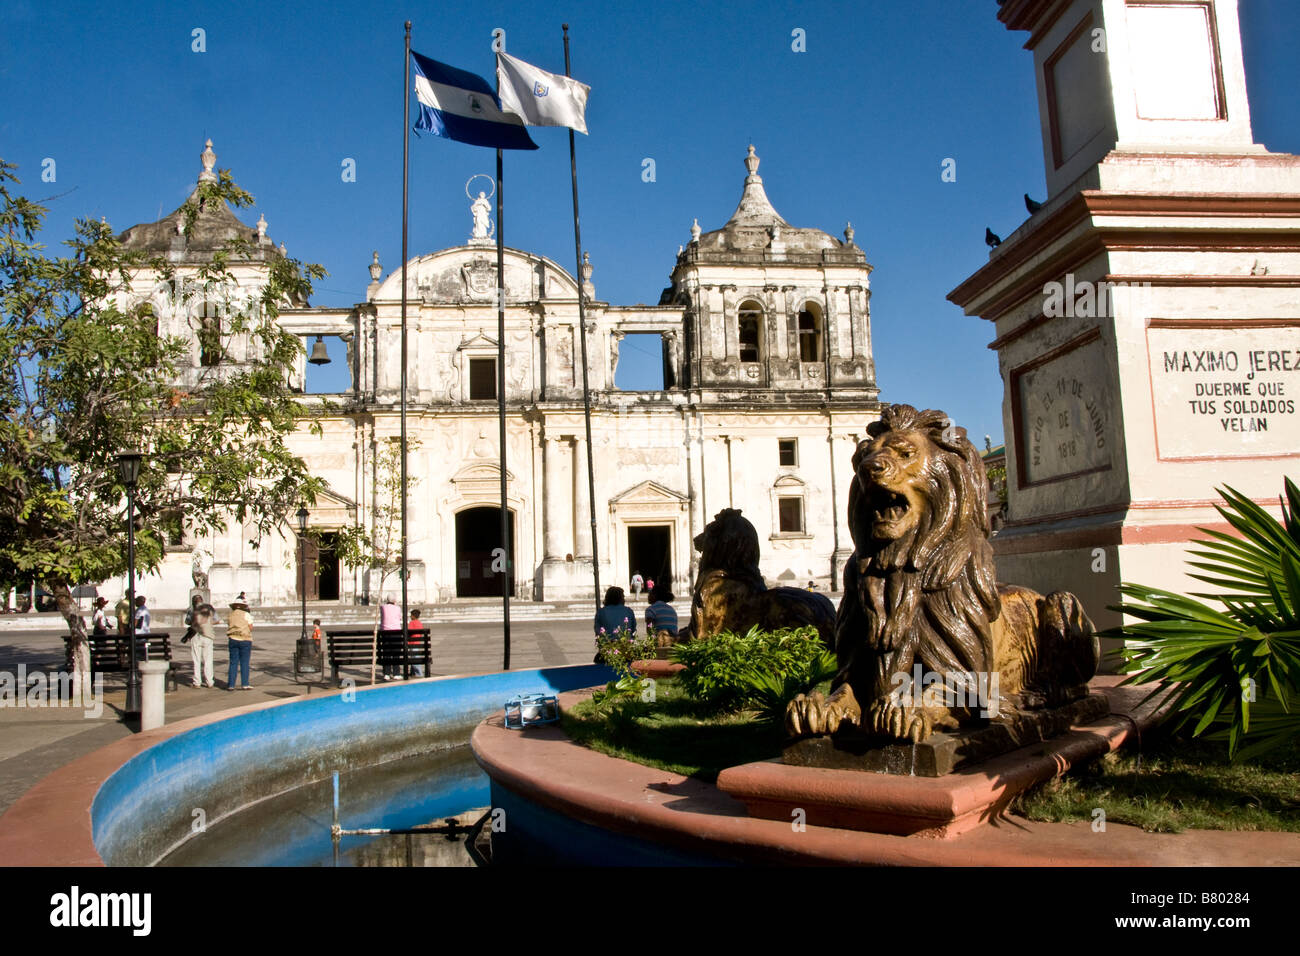 Leon Cathedral, Spanish colonial architecture - Stock Image